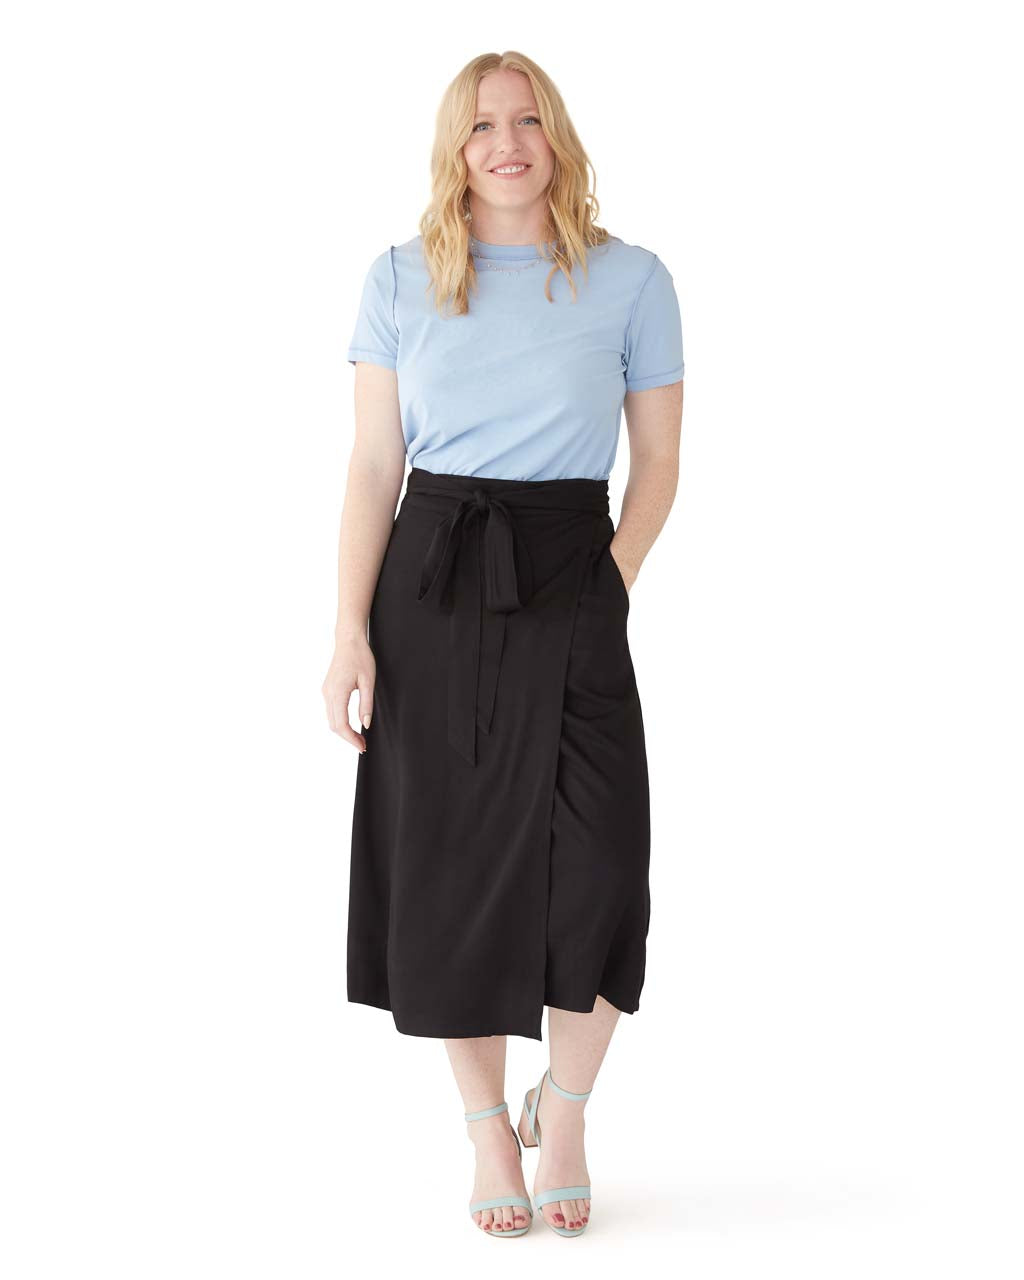 This wrap skirt comes in black.